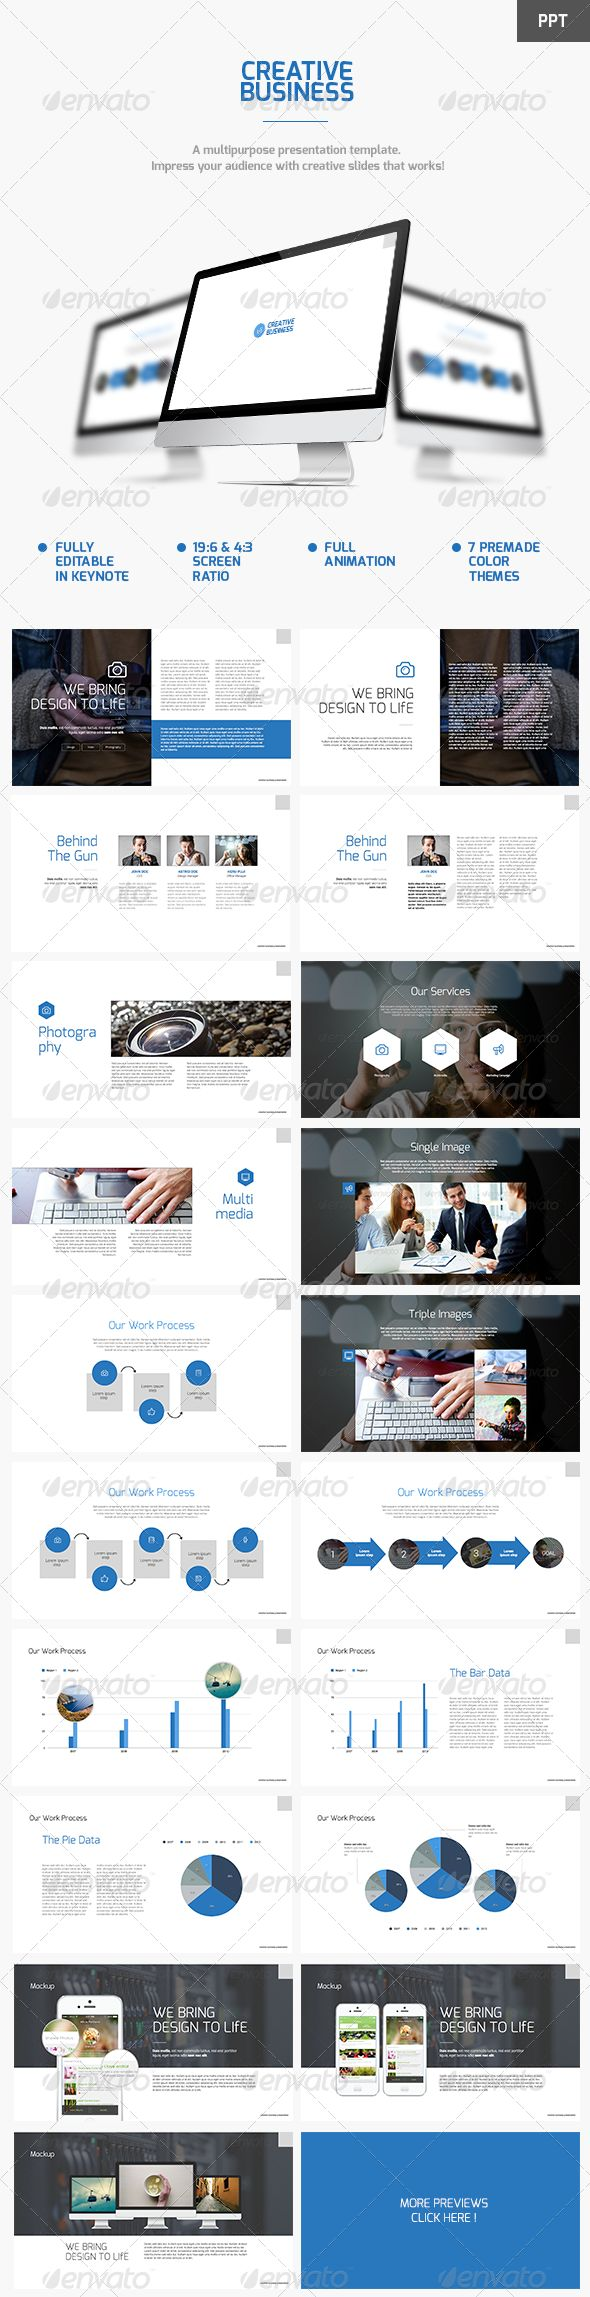 Creative Business Powerpoint Template (Powerpoint Templates) #Powerpoint #Powerpoint_Template #Presentation